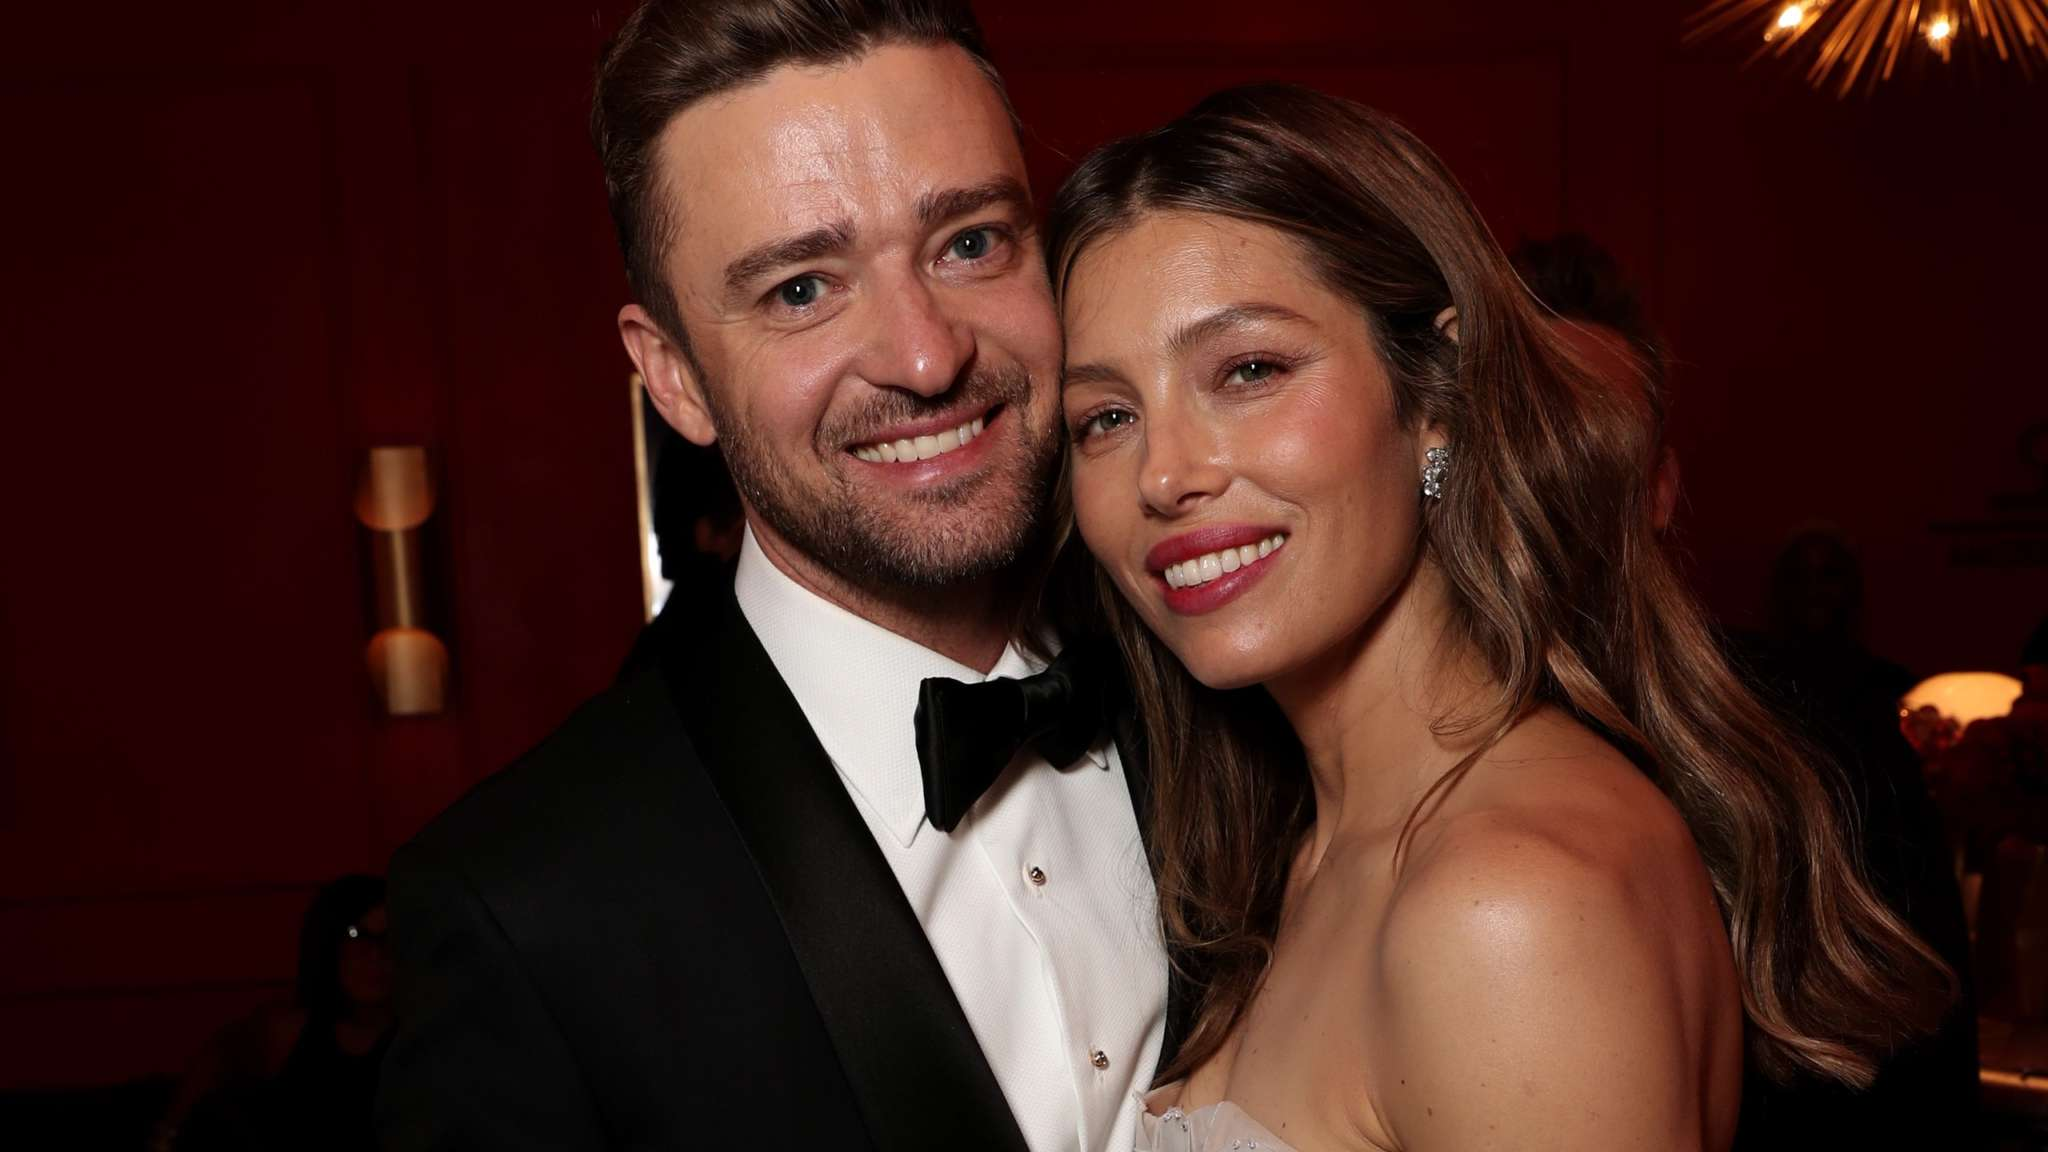 jessica-biel-gushes-over-her-and-justin-timberlakes-timeless-love-following-his-pda-scandal